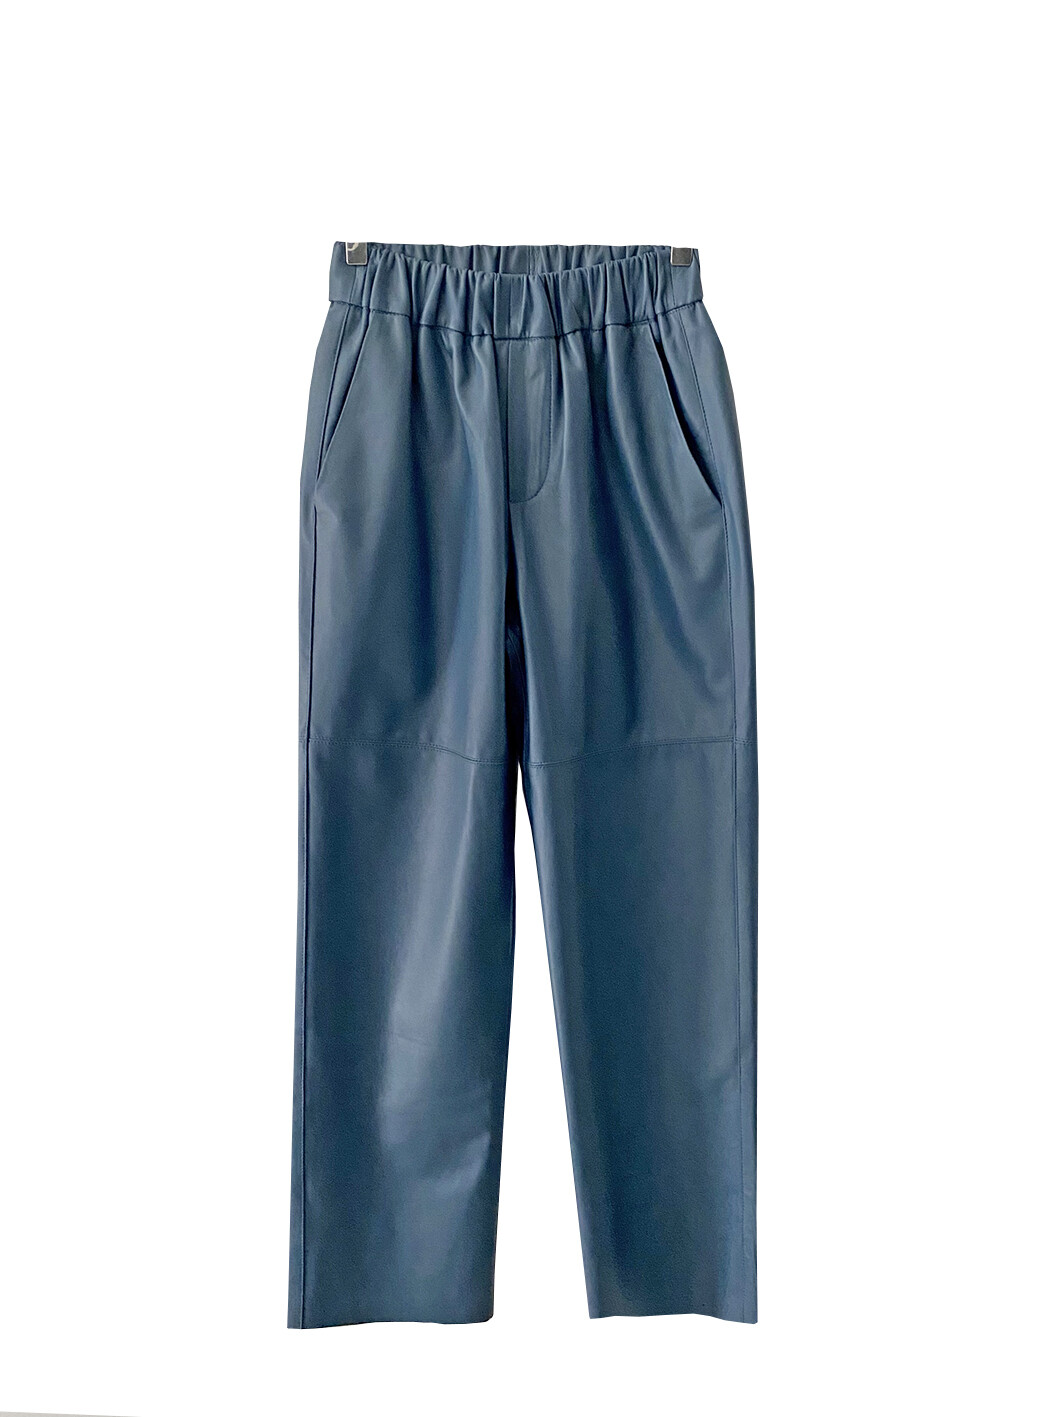 by LC studio Leather Trousers Blue